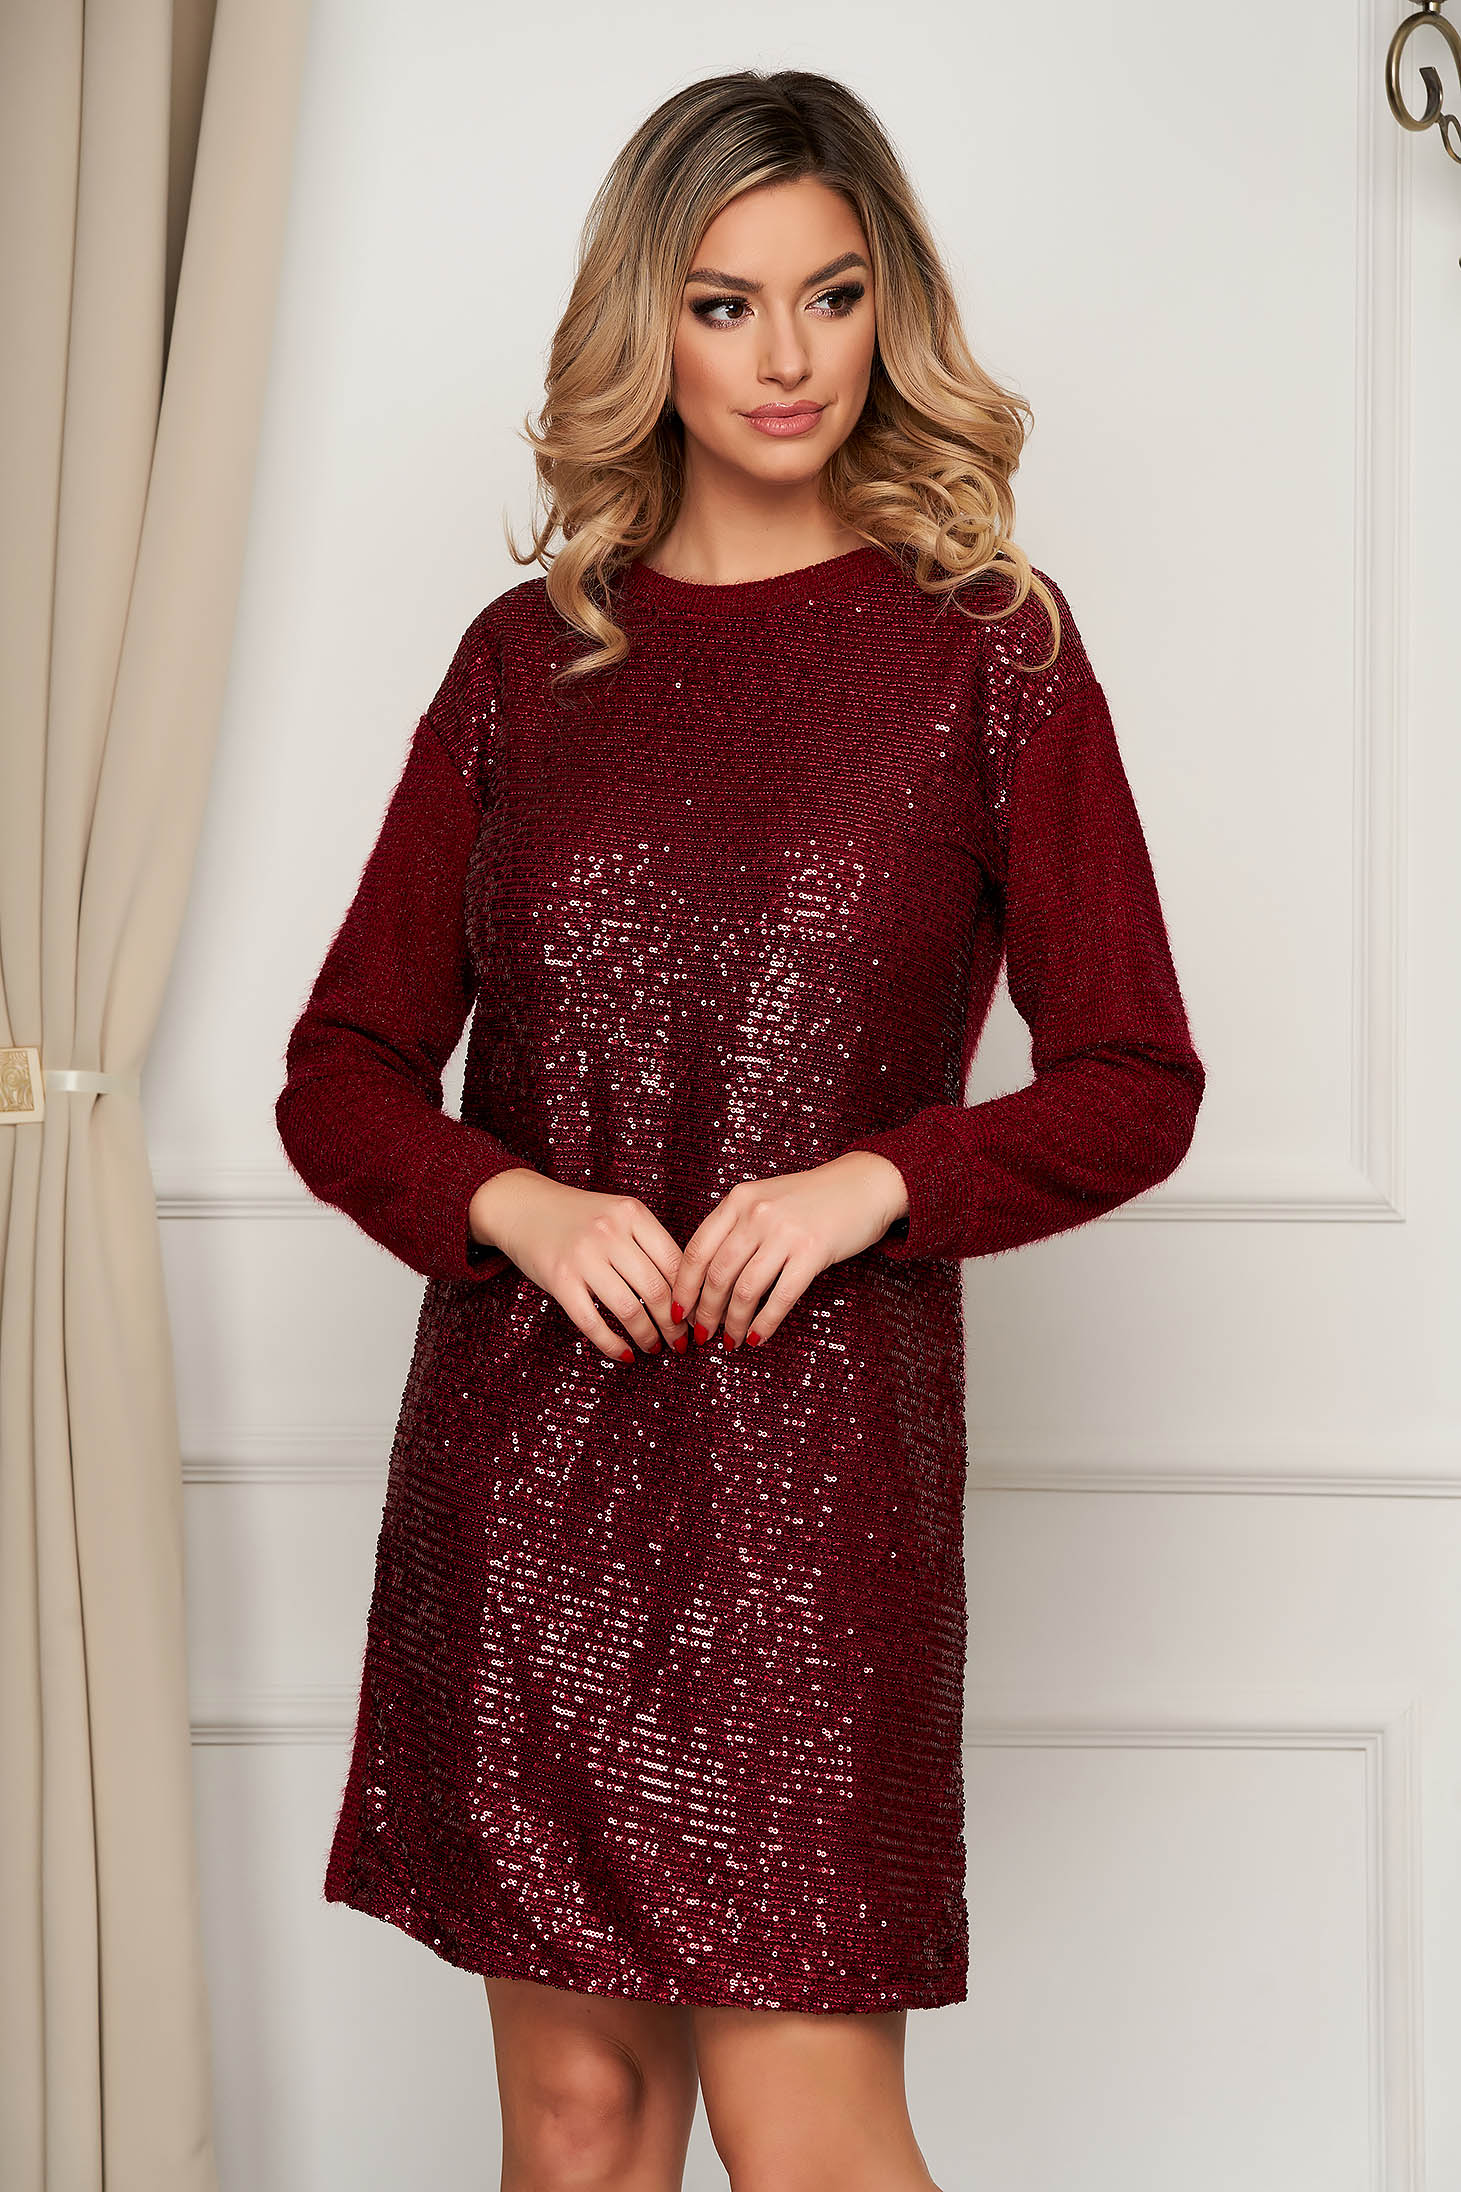 Clubbing short cut from elastic fabric with sequin embellished details burgundy dress